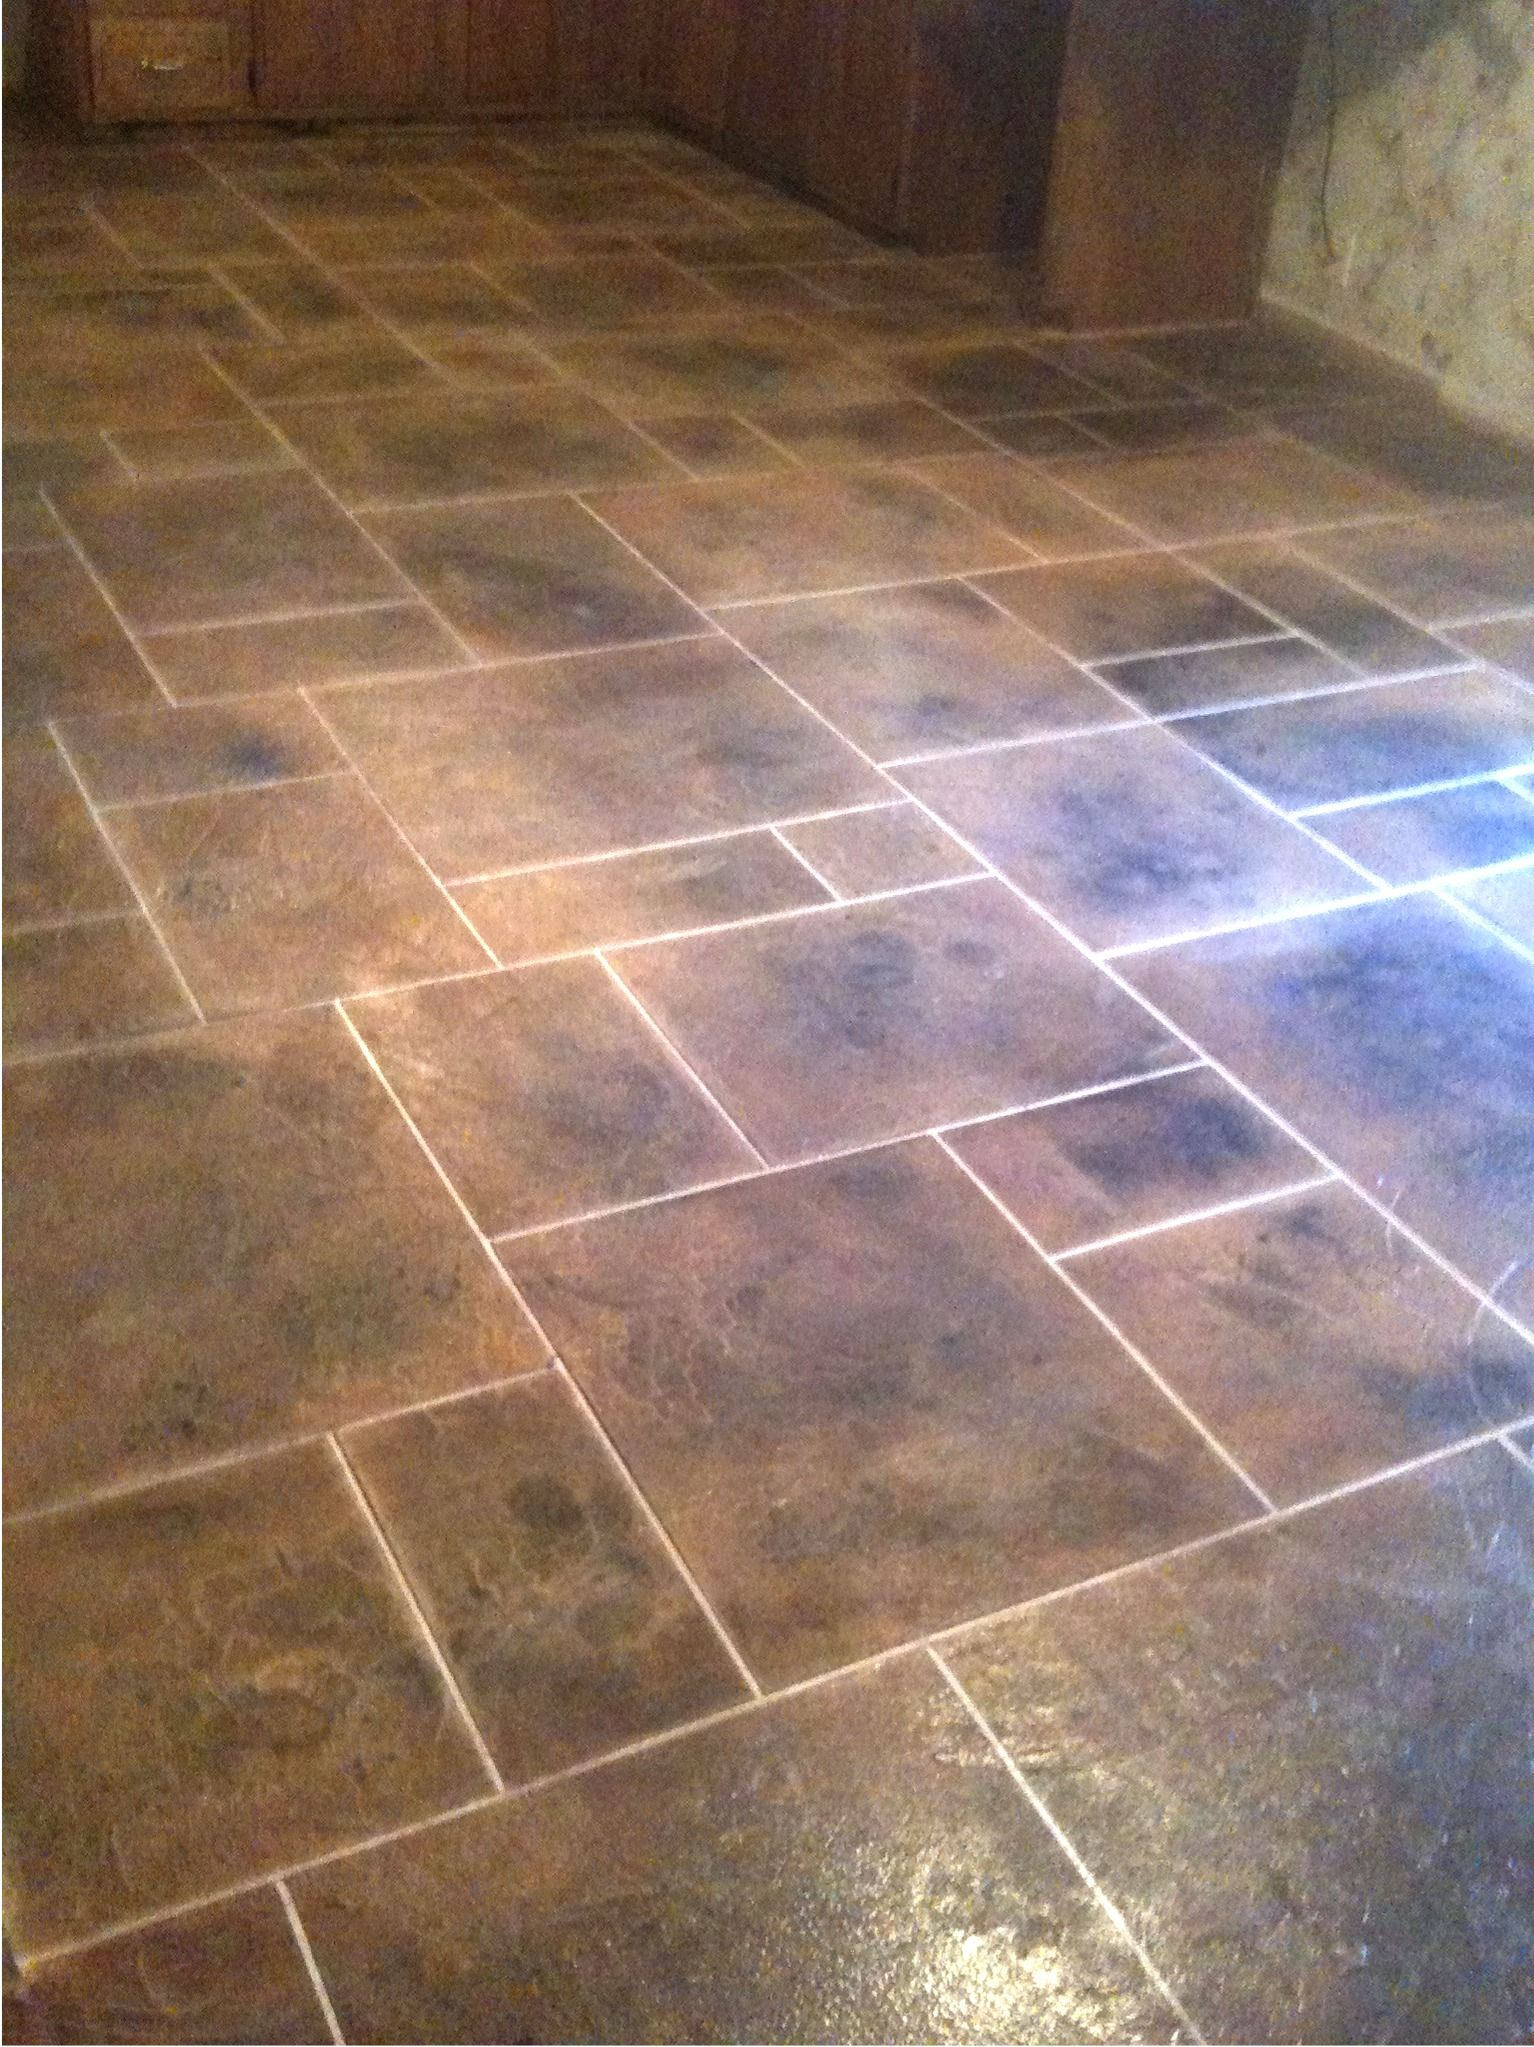 Stone Floors For Kitchen Kitchen Floor Tile Patterns Concrete Overlay Random Pattern